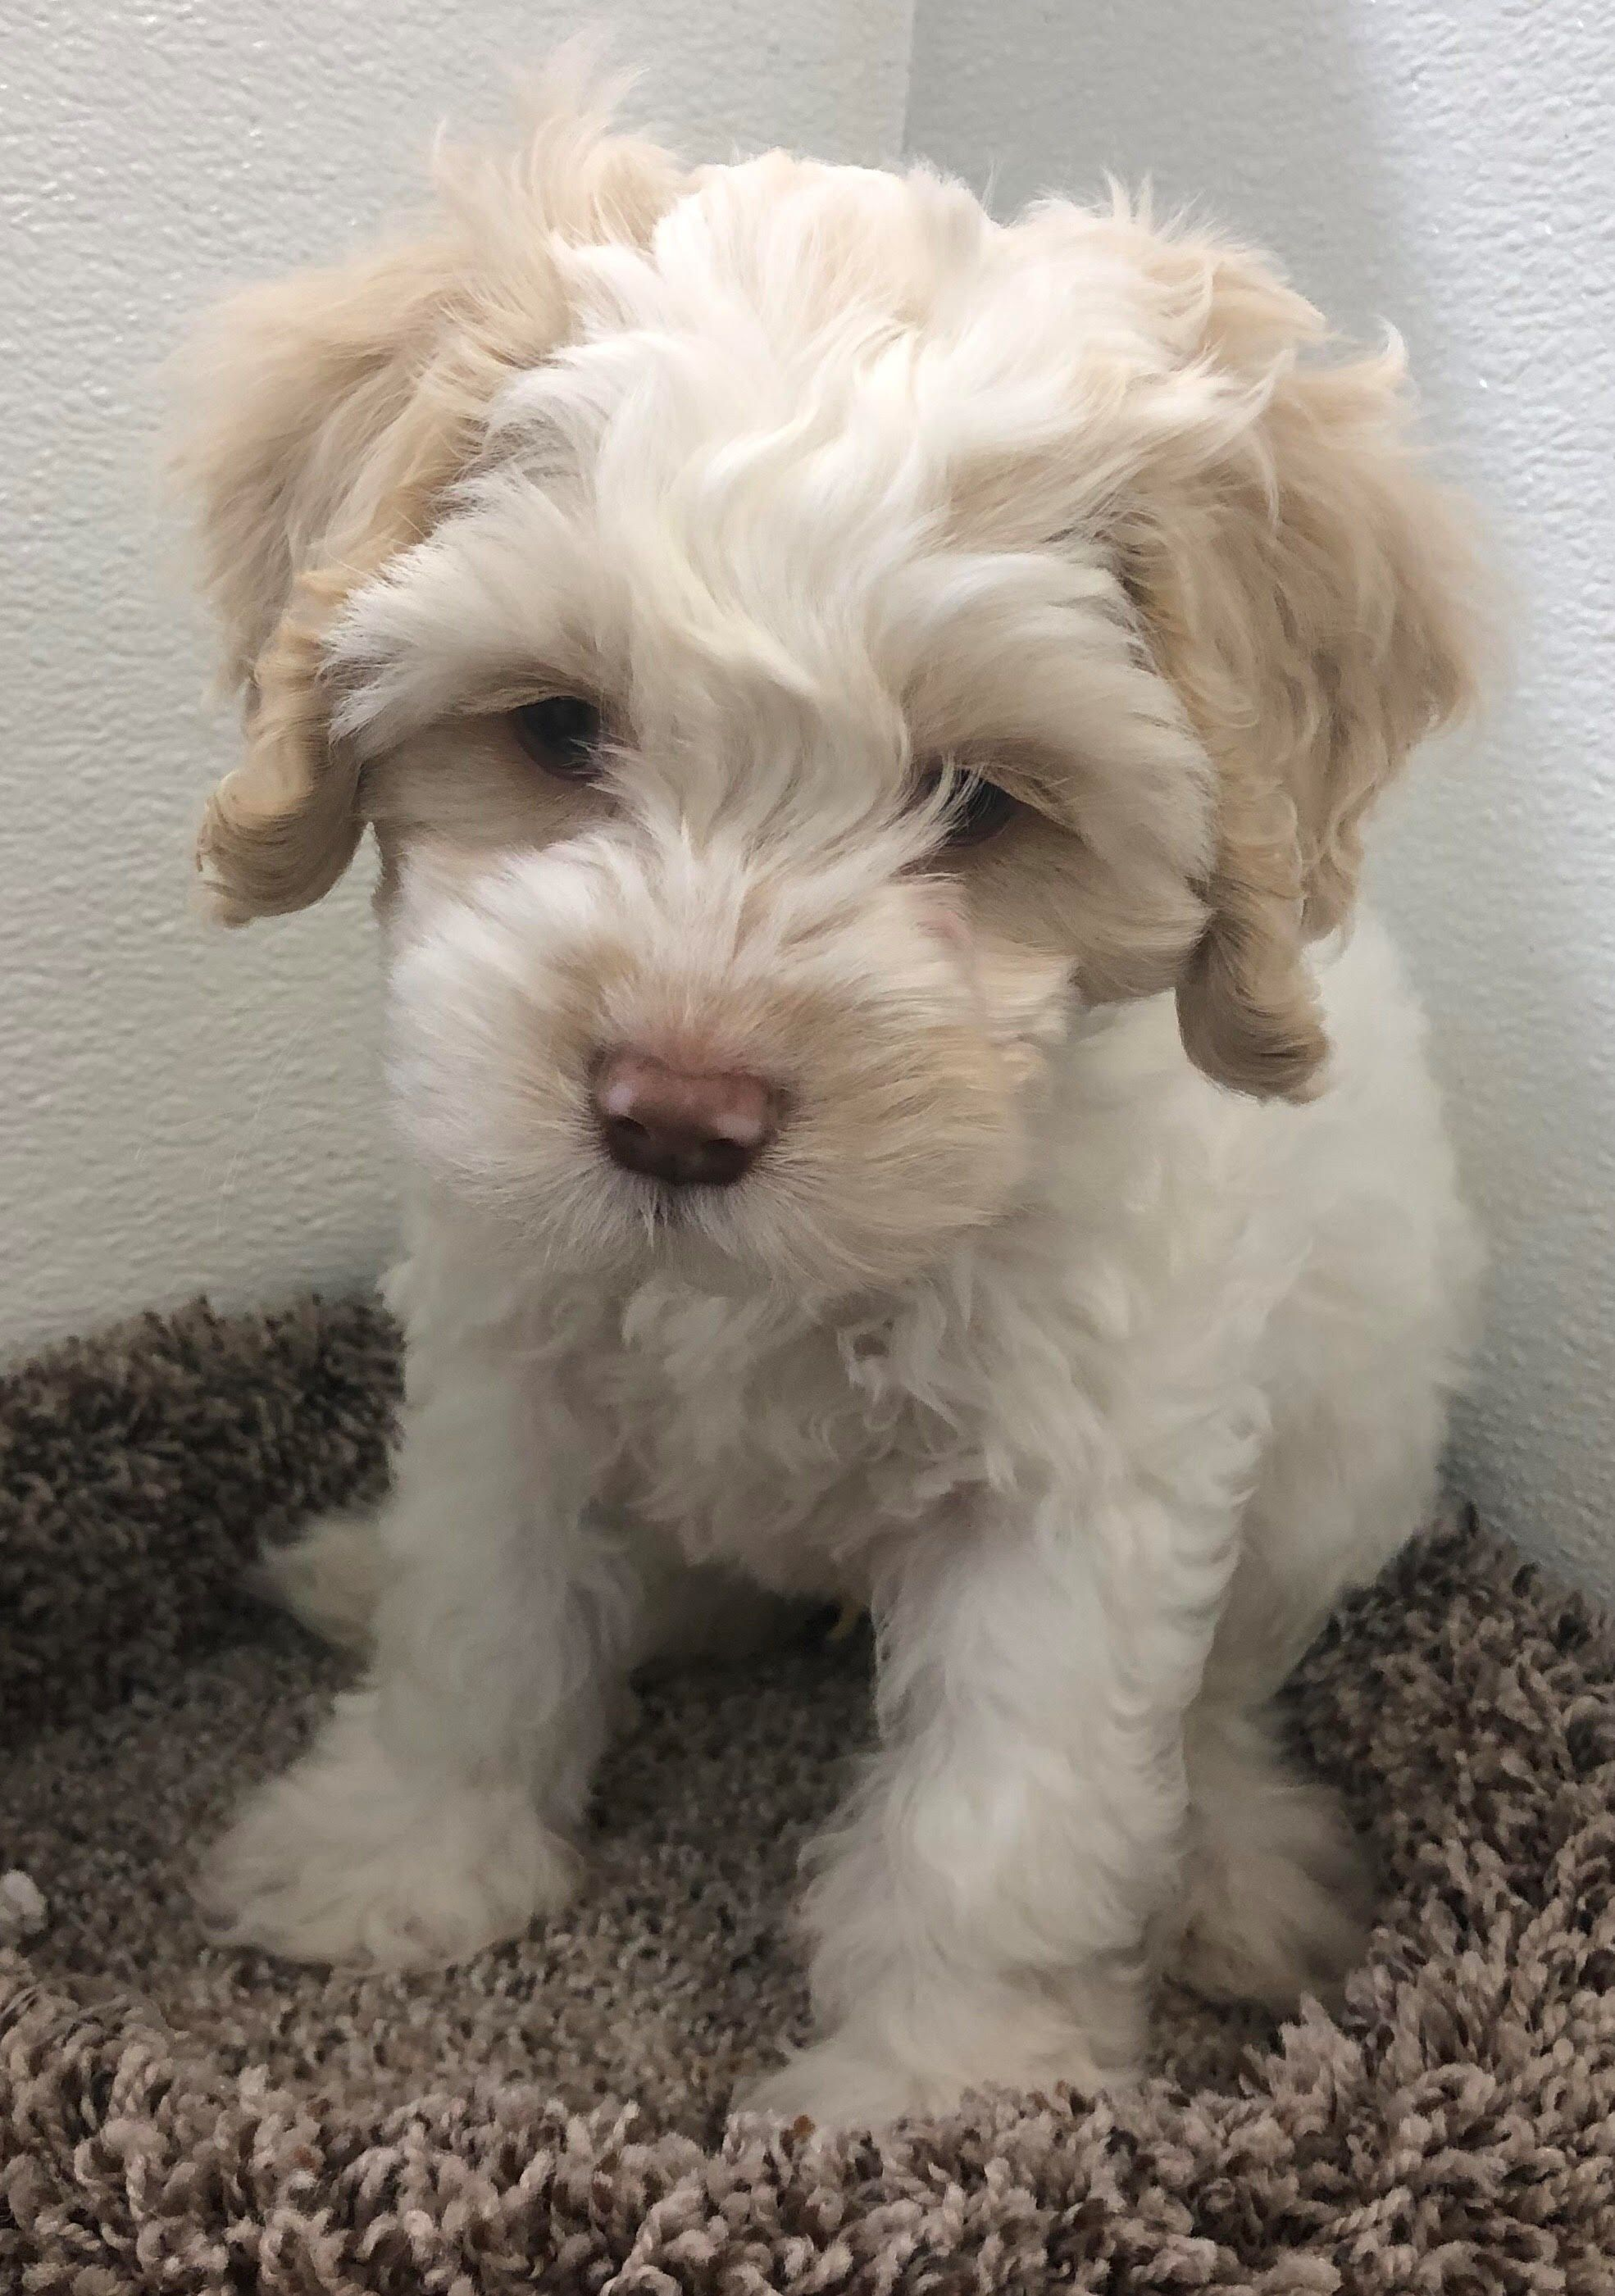 Petland Kansas City Has Cockapoo Puppies For Sale Check Out All